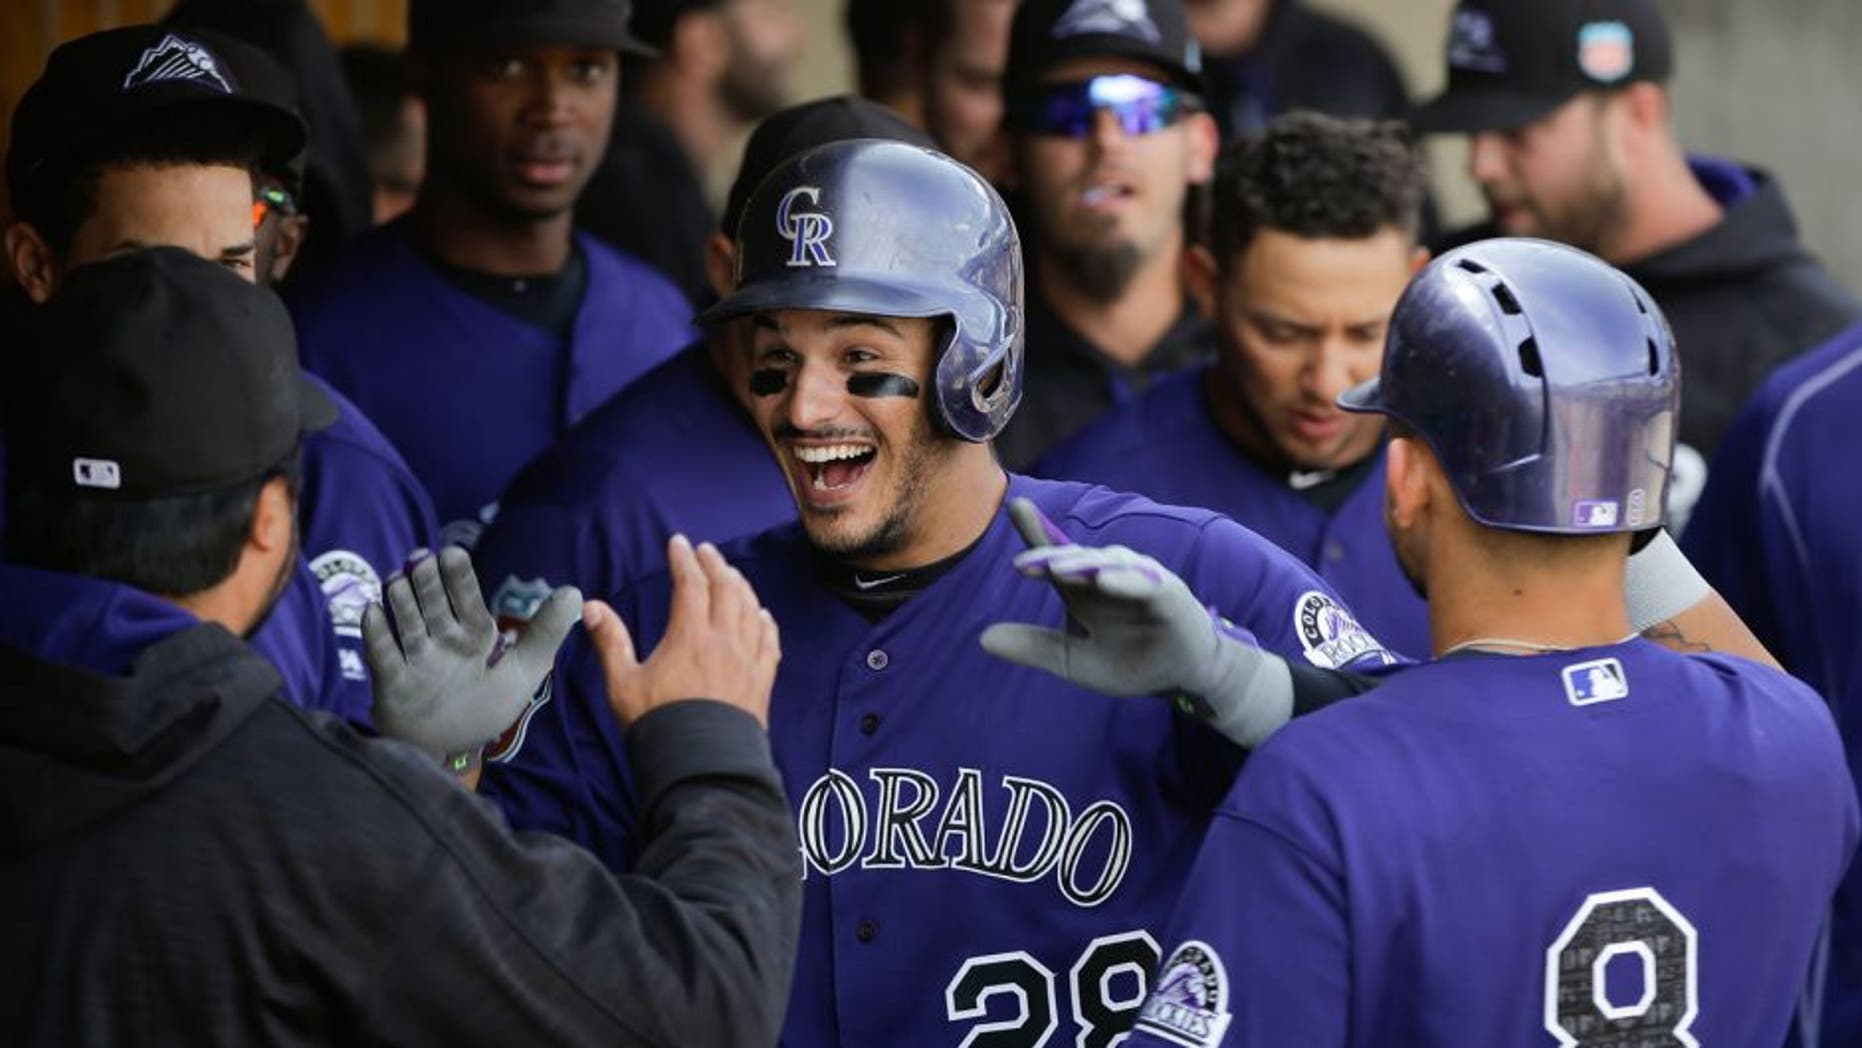 Colorado Rockies' Nolan Arenado, center, is congratulated in the dugout after hitting his second home run of the game during the fifth inning of a spring training baseball game against the Arizona Diamondbacks Tuesday, March 29, 2016, in Scottsdale, Ariz. (AP Photo/Jae C. Hong)